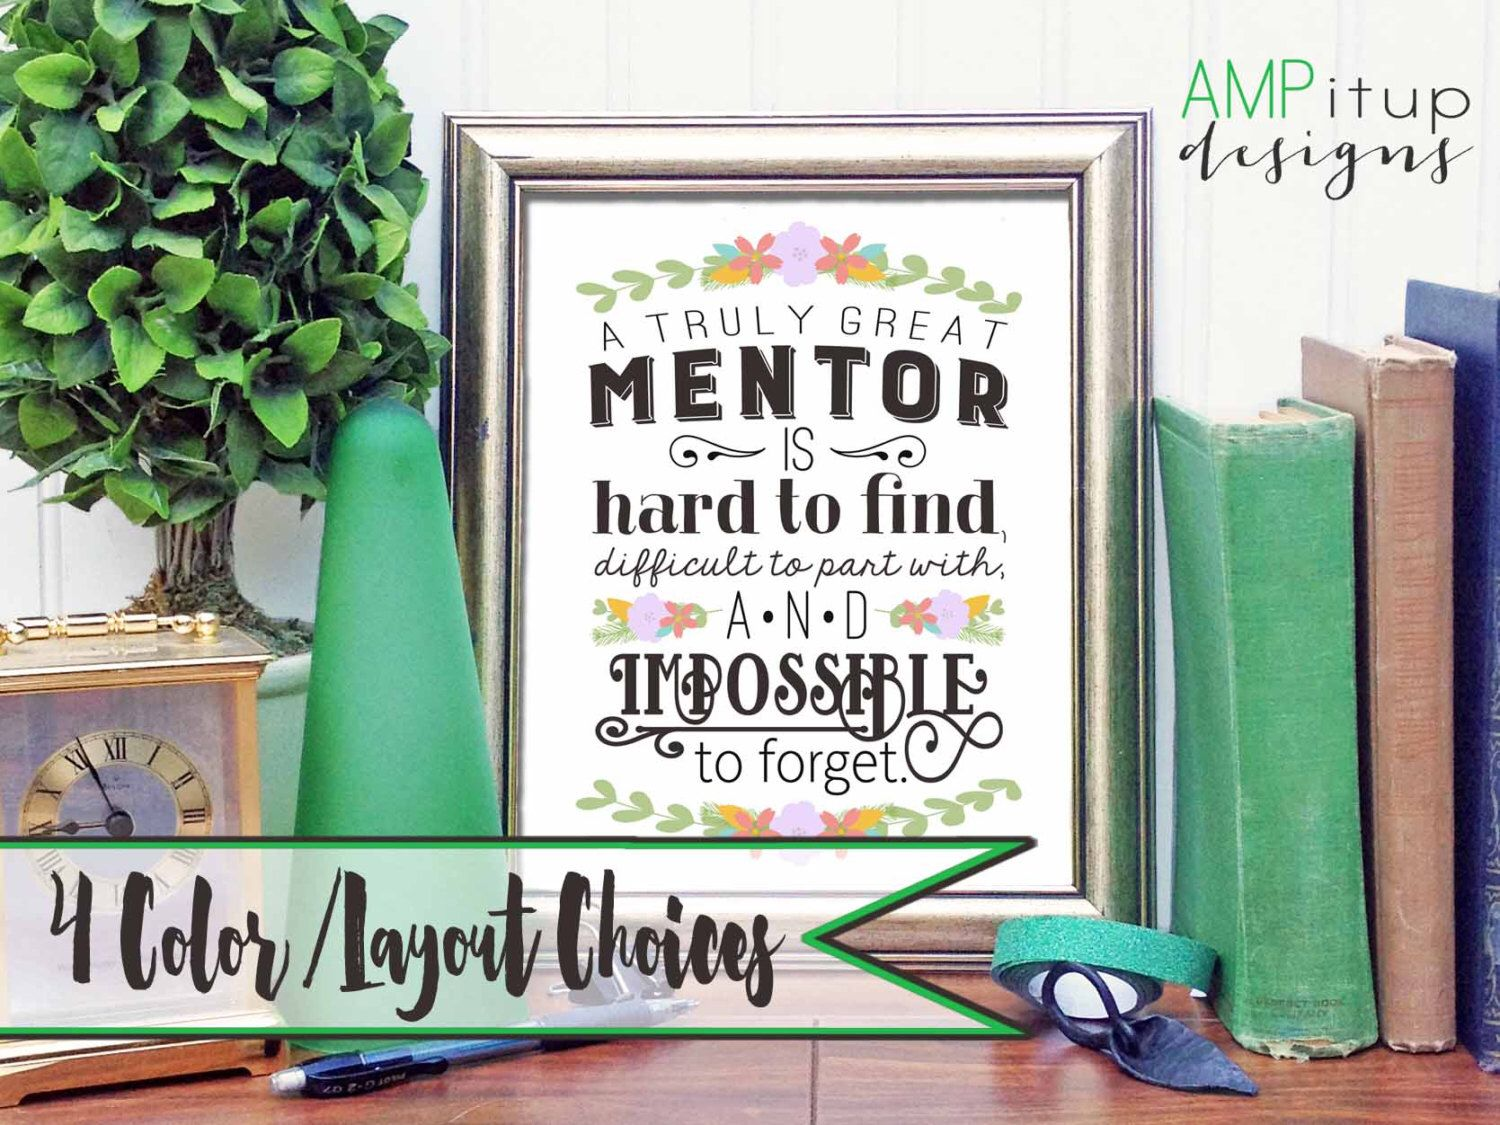 Printable Mentor Gift - A Great Mentor is Hard to Find - Mentor Gift - Instant Download - Gift for Mentor - Mentor Printable - Mentor Quote #mentorquotes